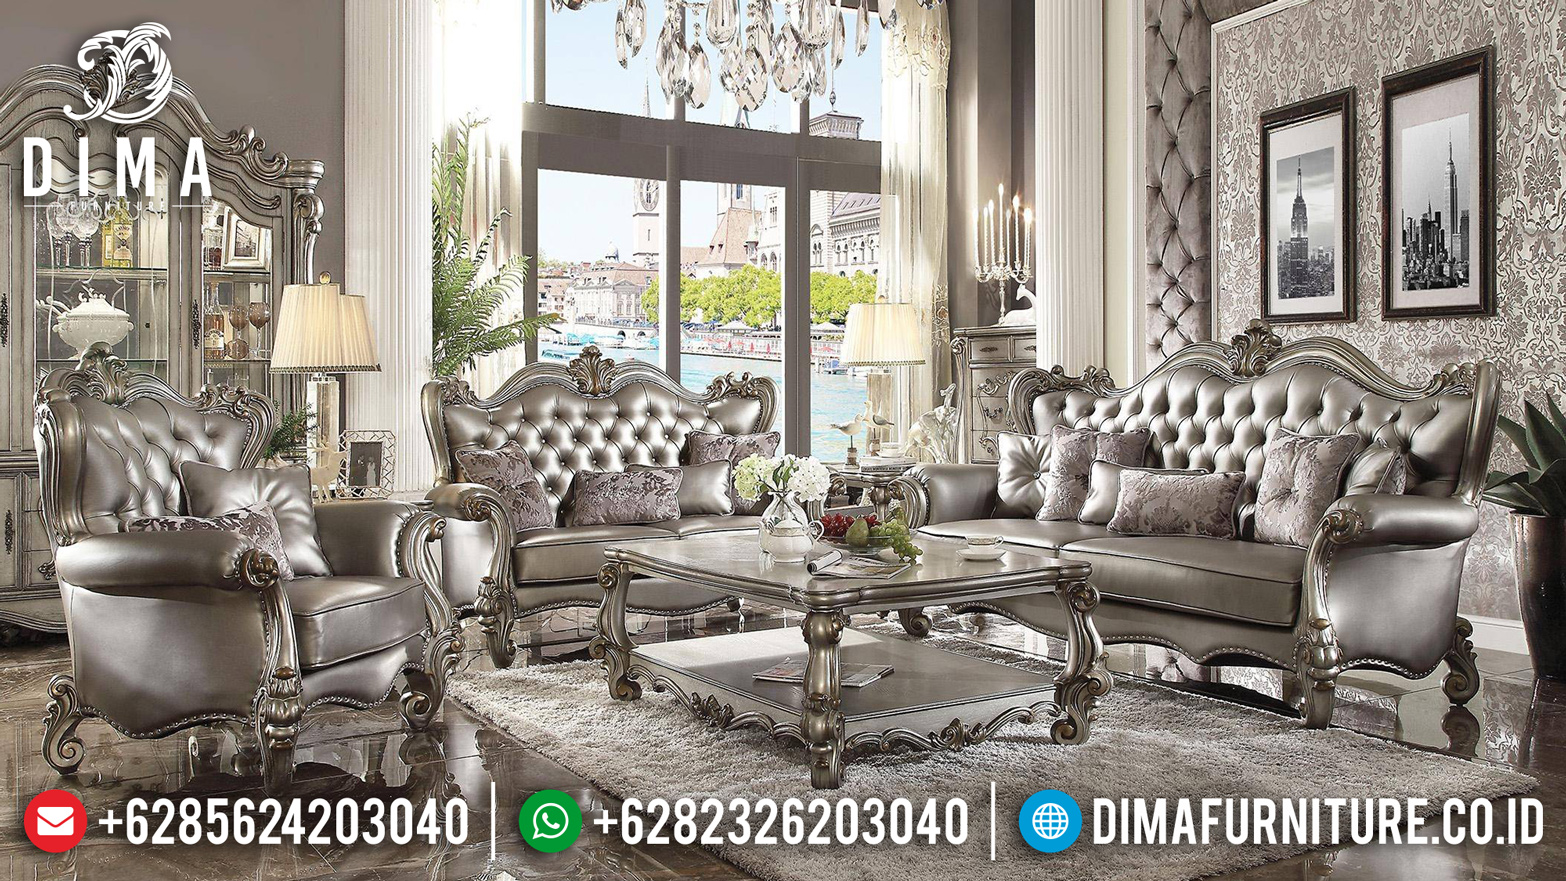 Design Sofa Tamu Mewah Luxury Carving Gaya Hunian Selebriti Tanah Air BT-0458